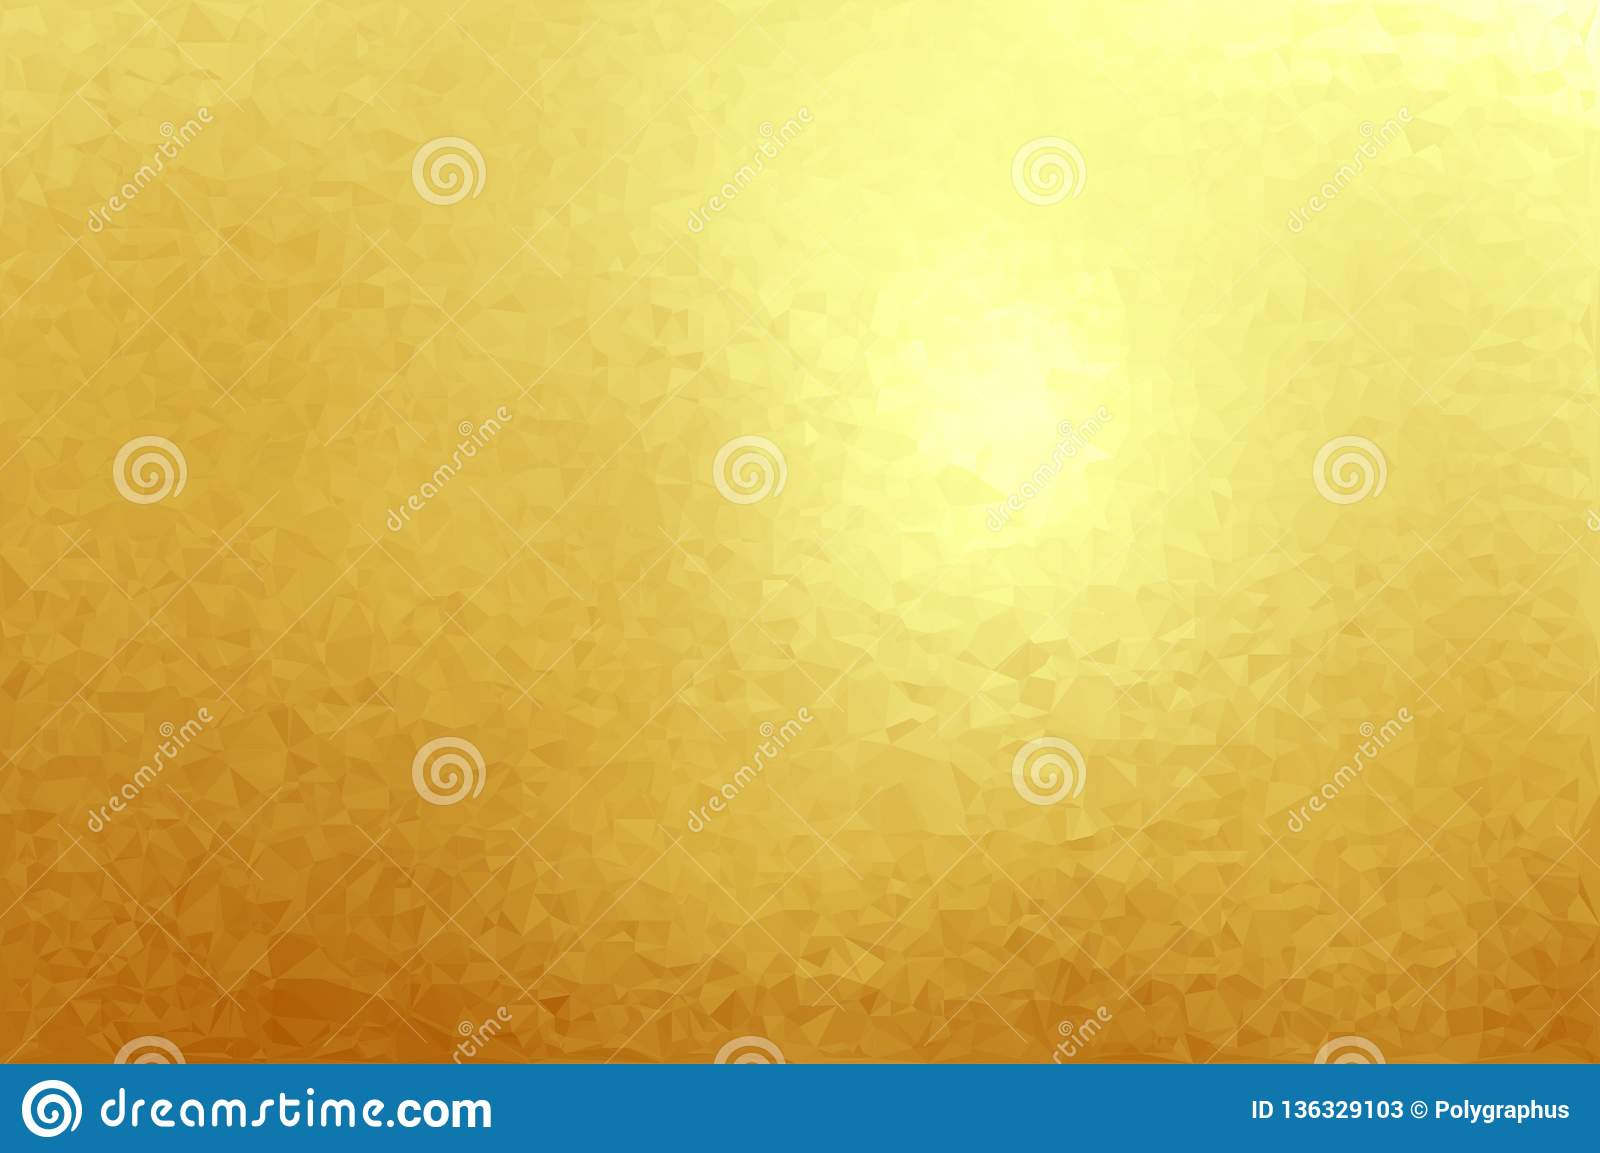 Gold Foil Texture Background Abstract Vector Illustration Stock Vector Illustration Of Card Golden 136329103